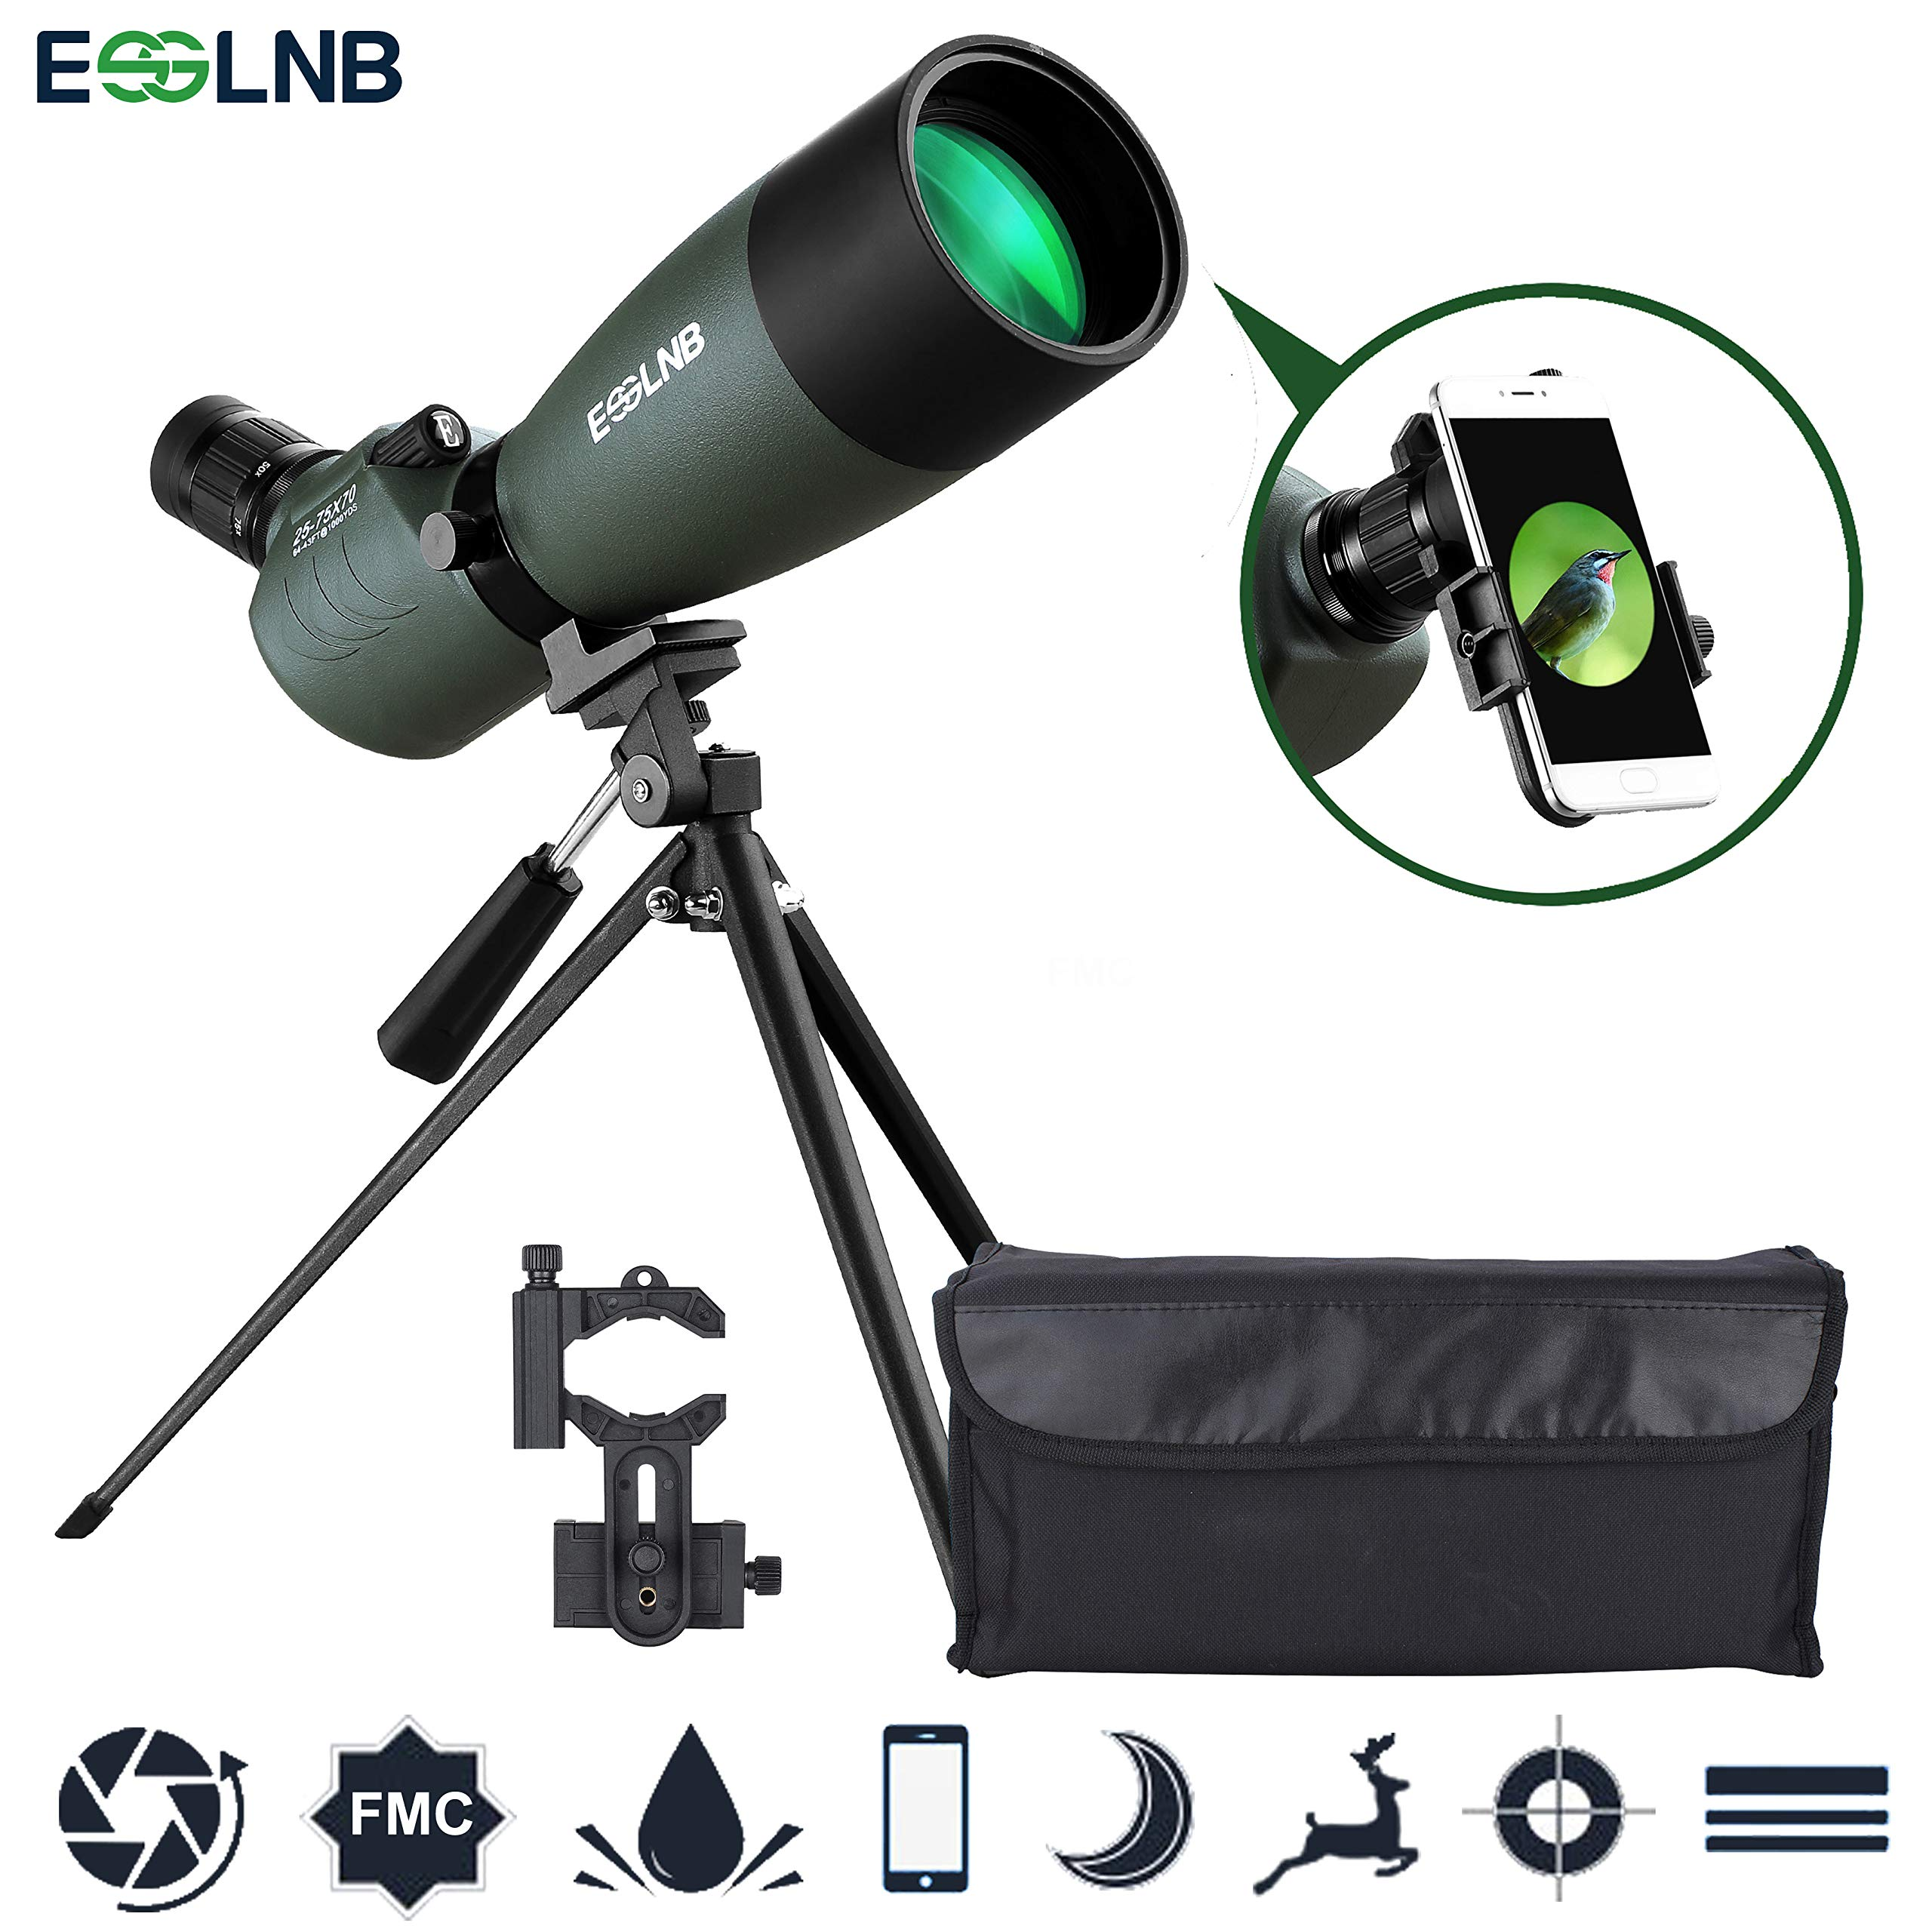 ESSLNB Spotting Scope with Tripod Phone Adapter BAK4 Prism 25-75 X 70 Angled Waterproof Spotting Scopes for Target Shooting Bird Watching Hunting by ESSLNB